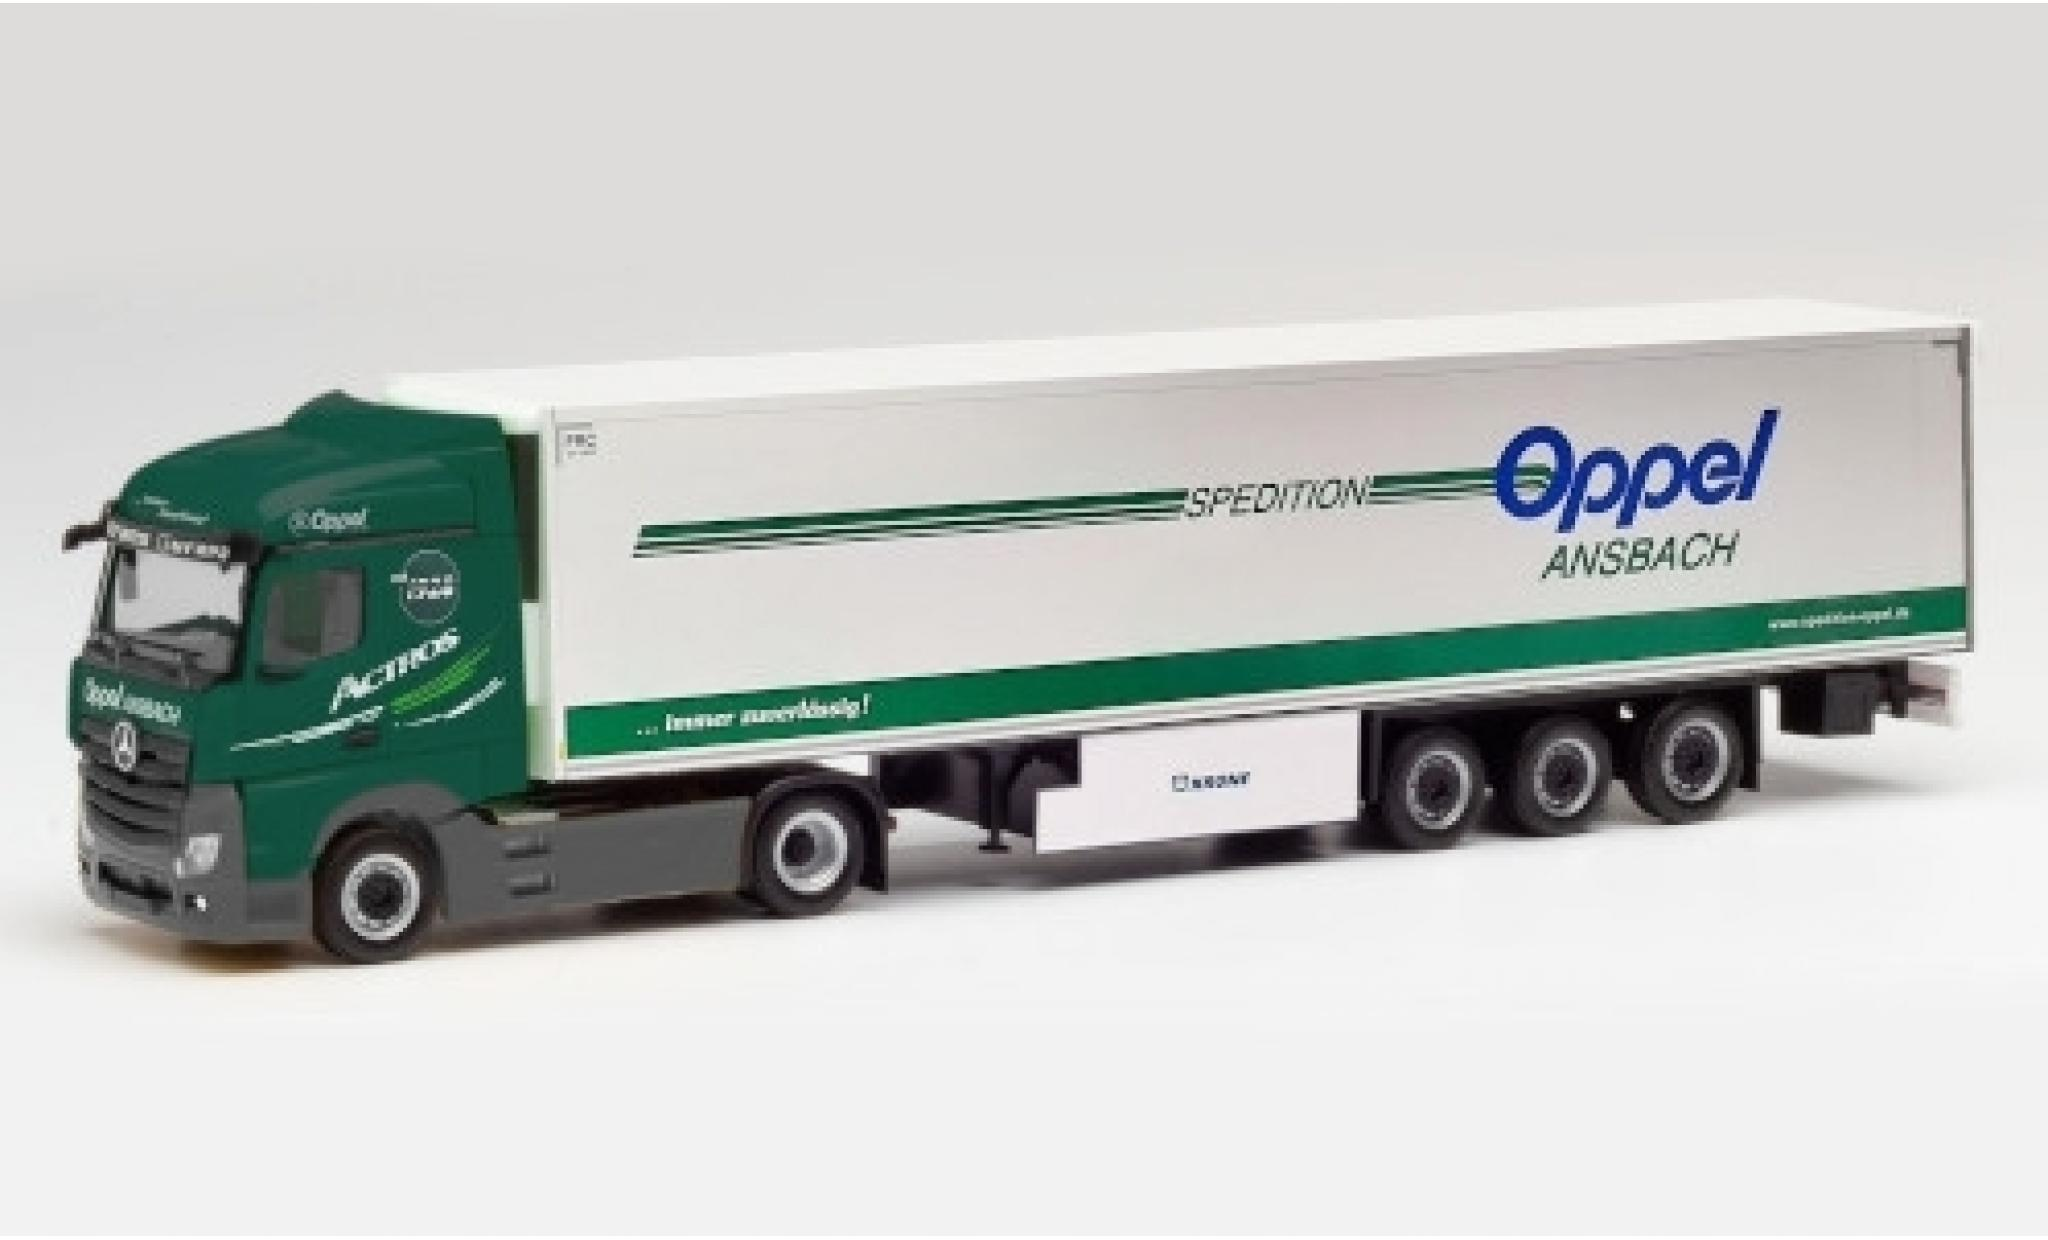 Mercedes Actros 1/87 Herpa StreamSpace 2.5 Oppel Ansbach Tracteur Case